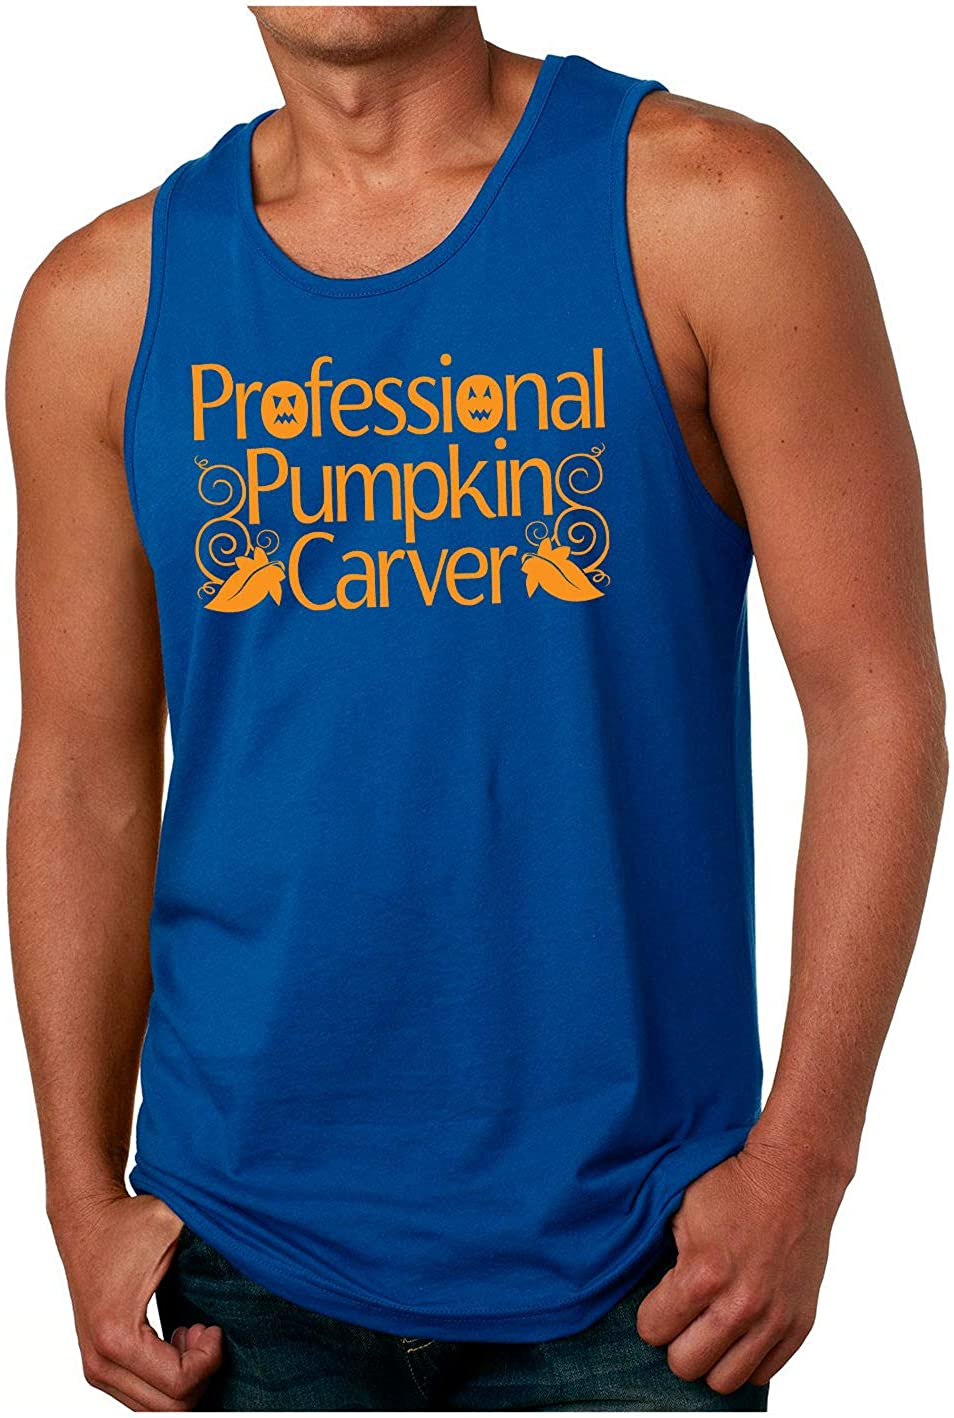 HARD EDGE DESIGN Men's Professional Pumpkin Carver Tank Top, Large, Royal Blue